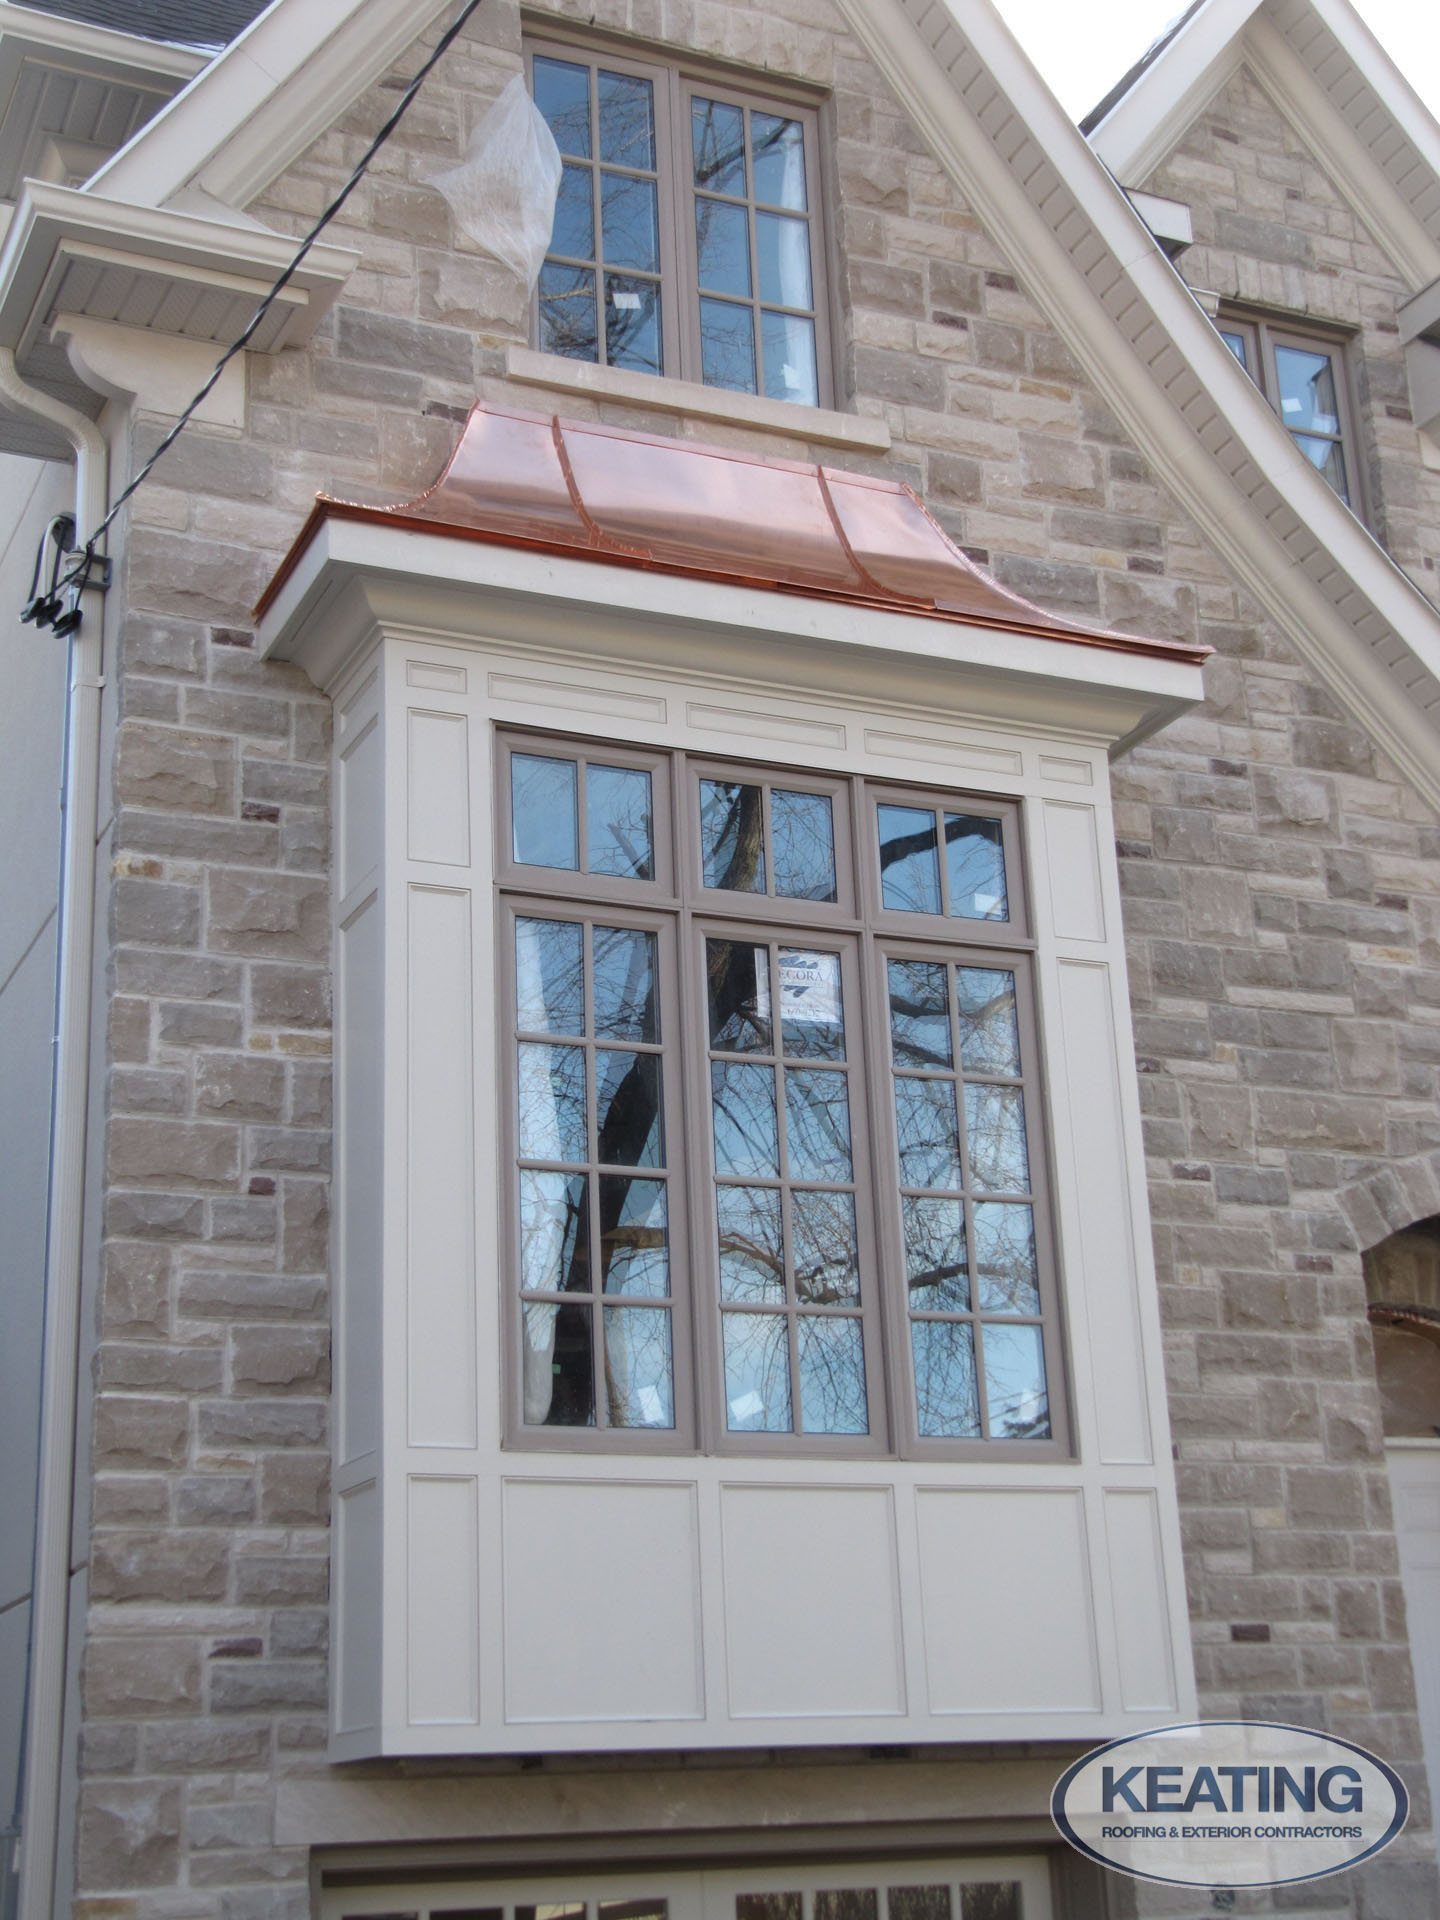 Portfolio Keating Roofing And Exteriors In Toronto